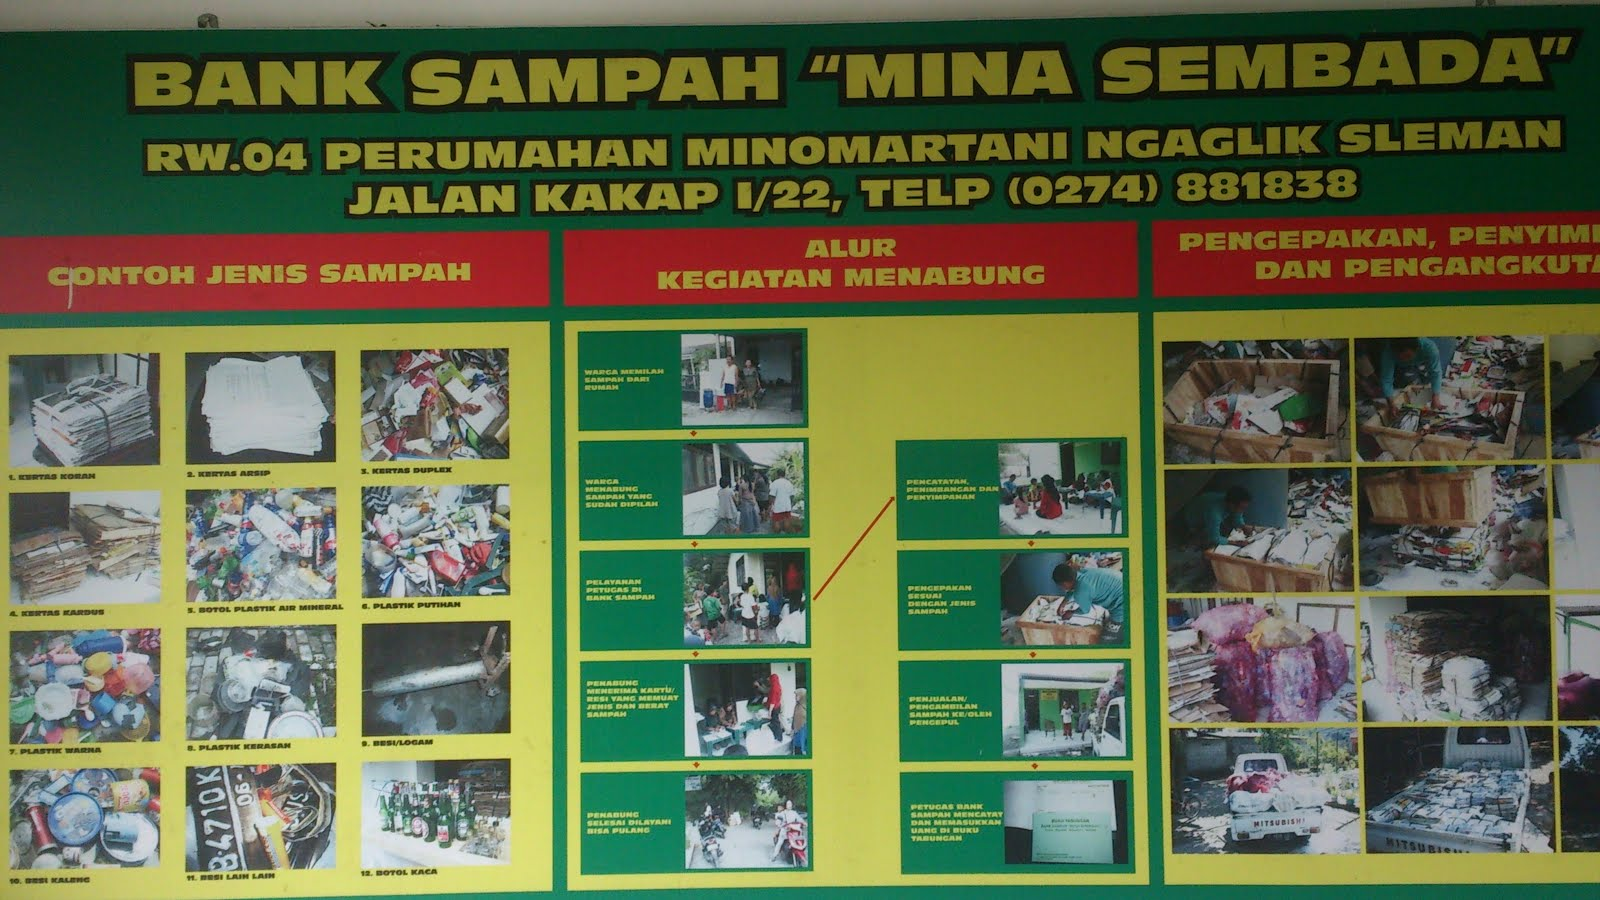 Bank Sampah MINA SEMBADA